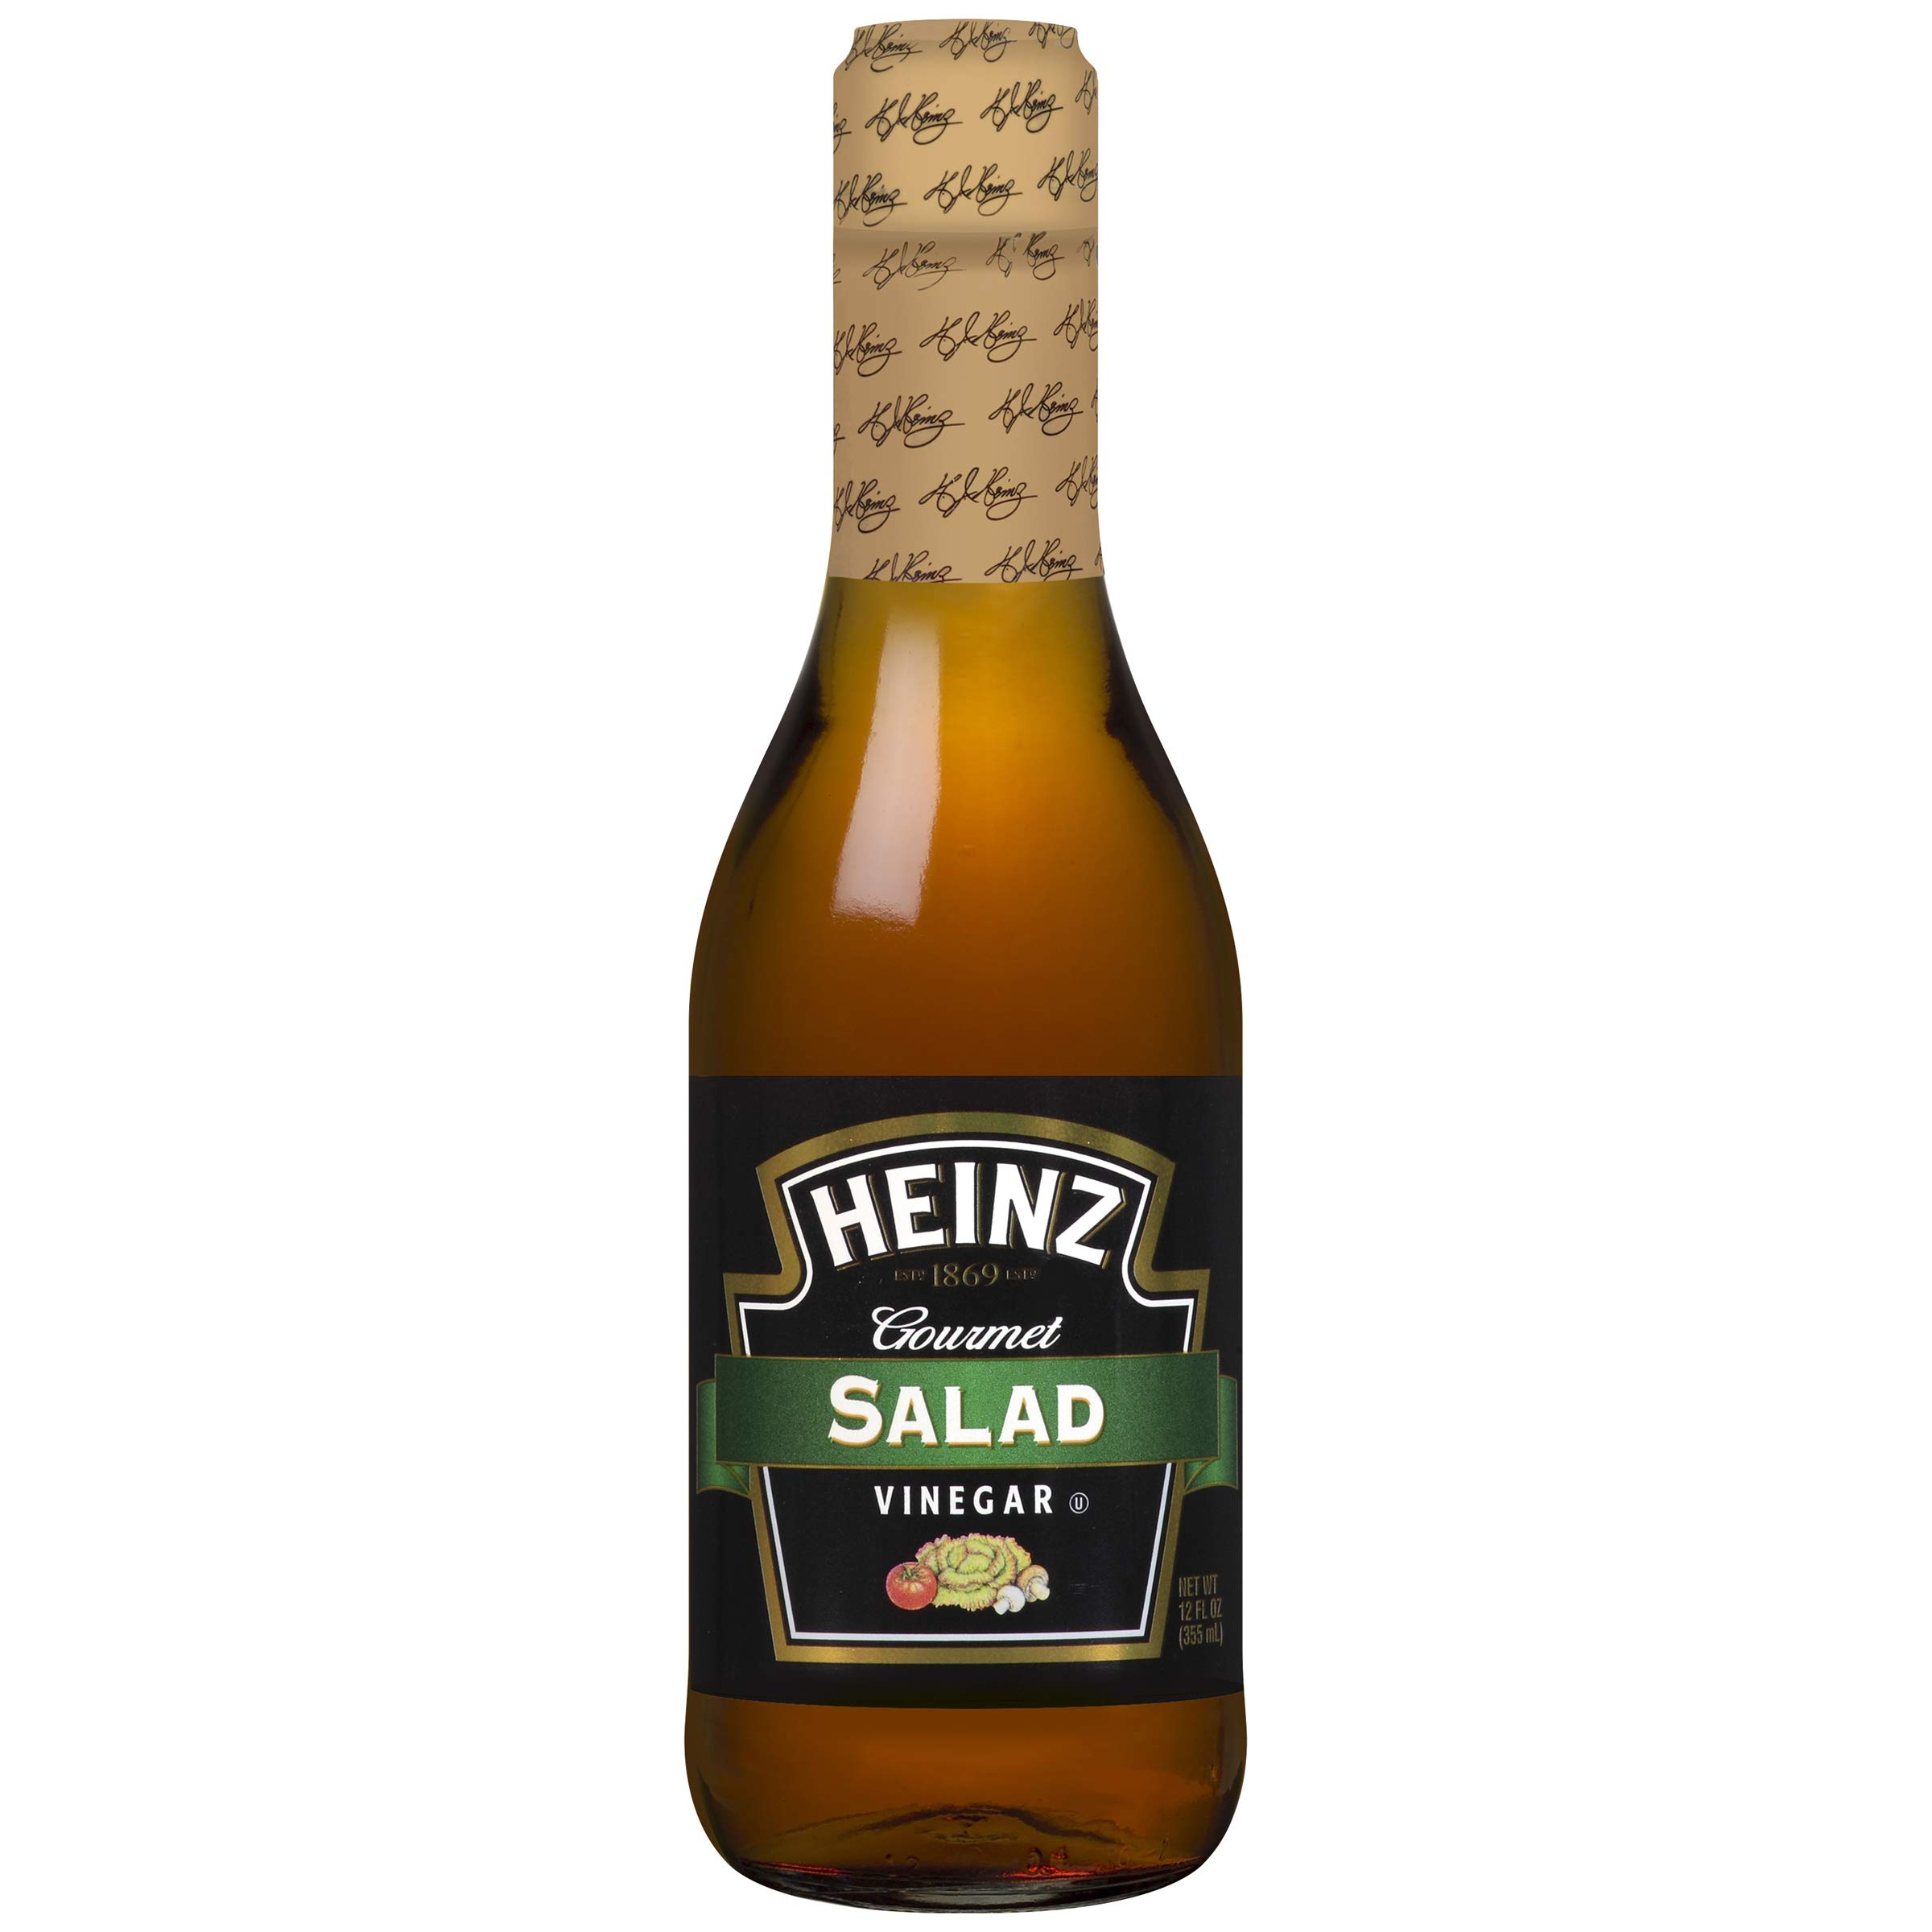 Heinz Salad Vinegar (12 oz Bottles, Pack of 12) by Heinz